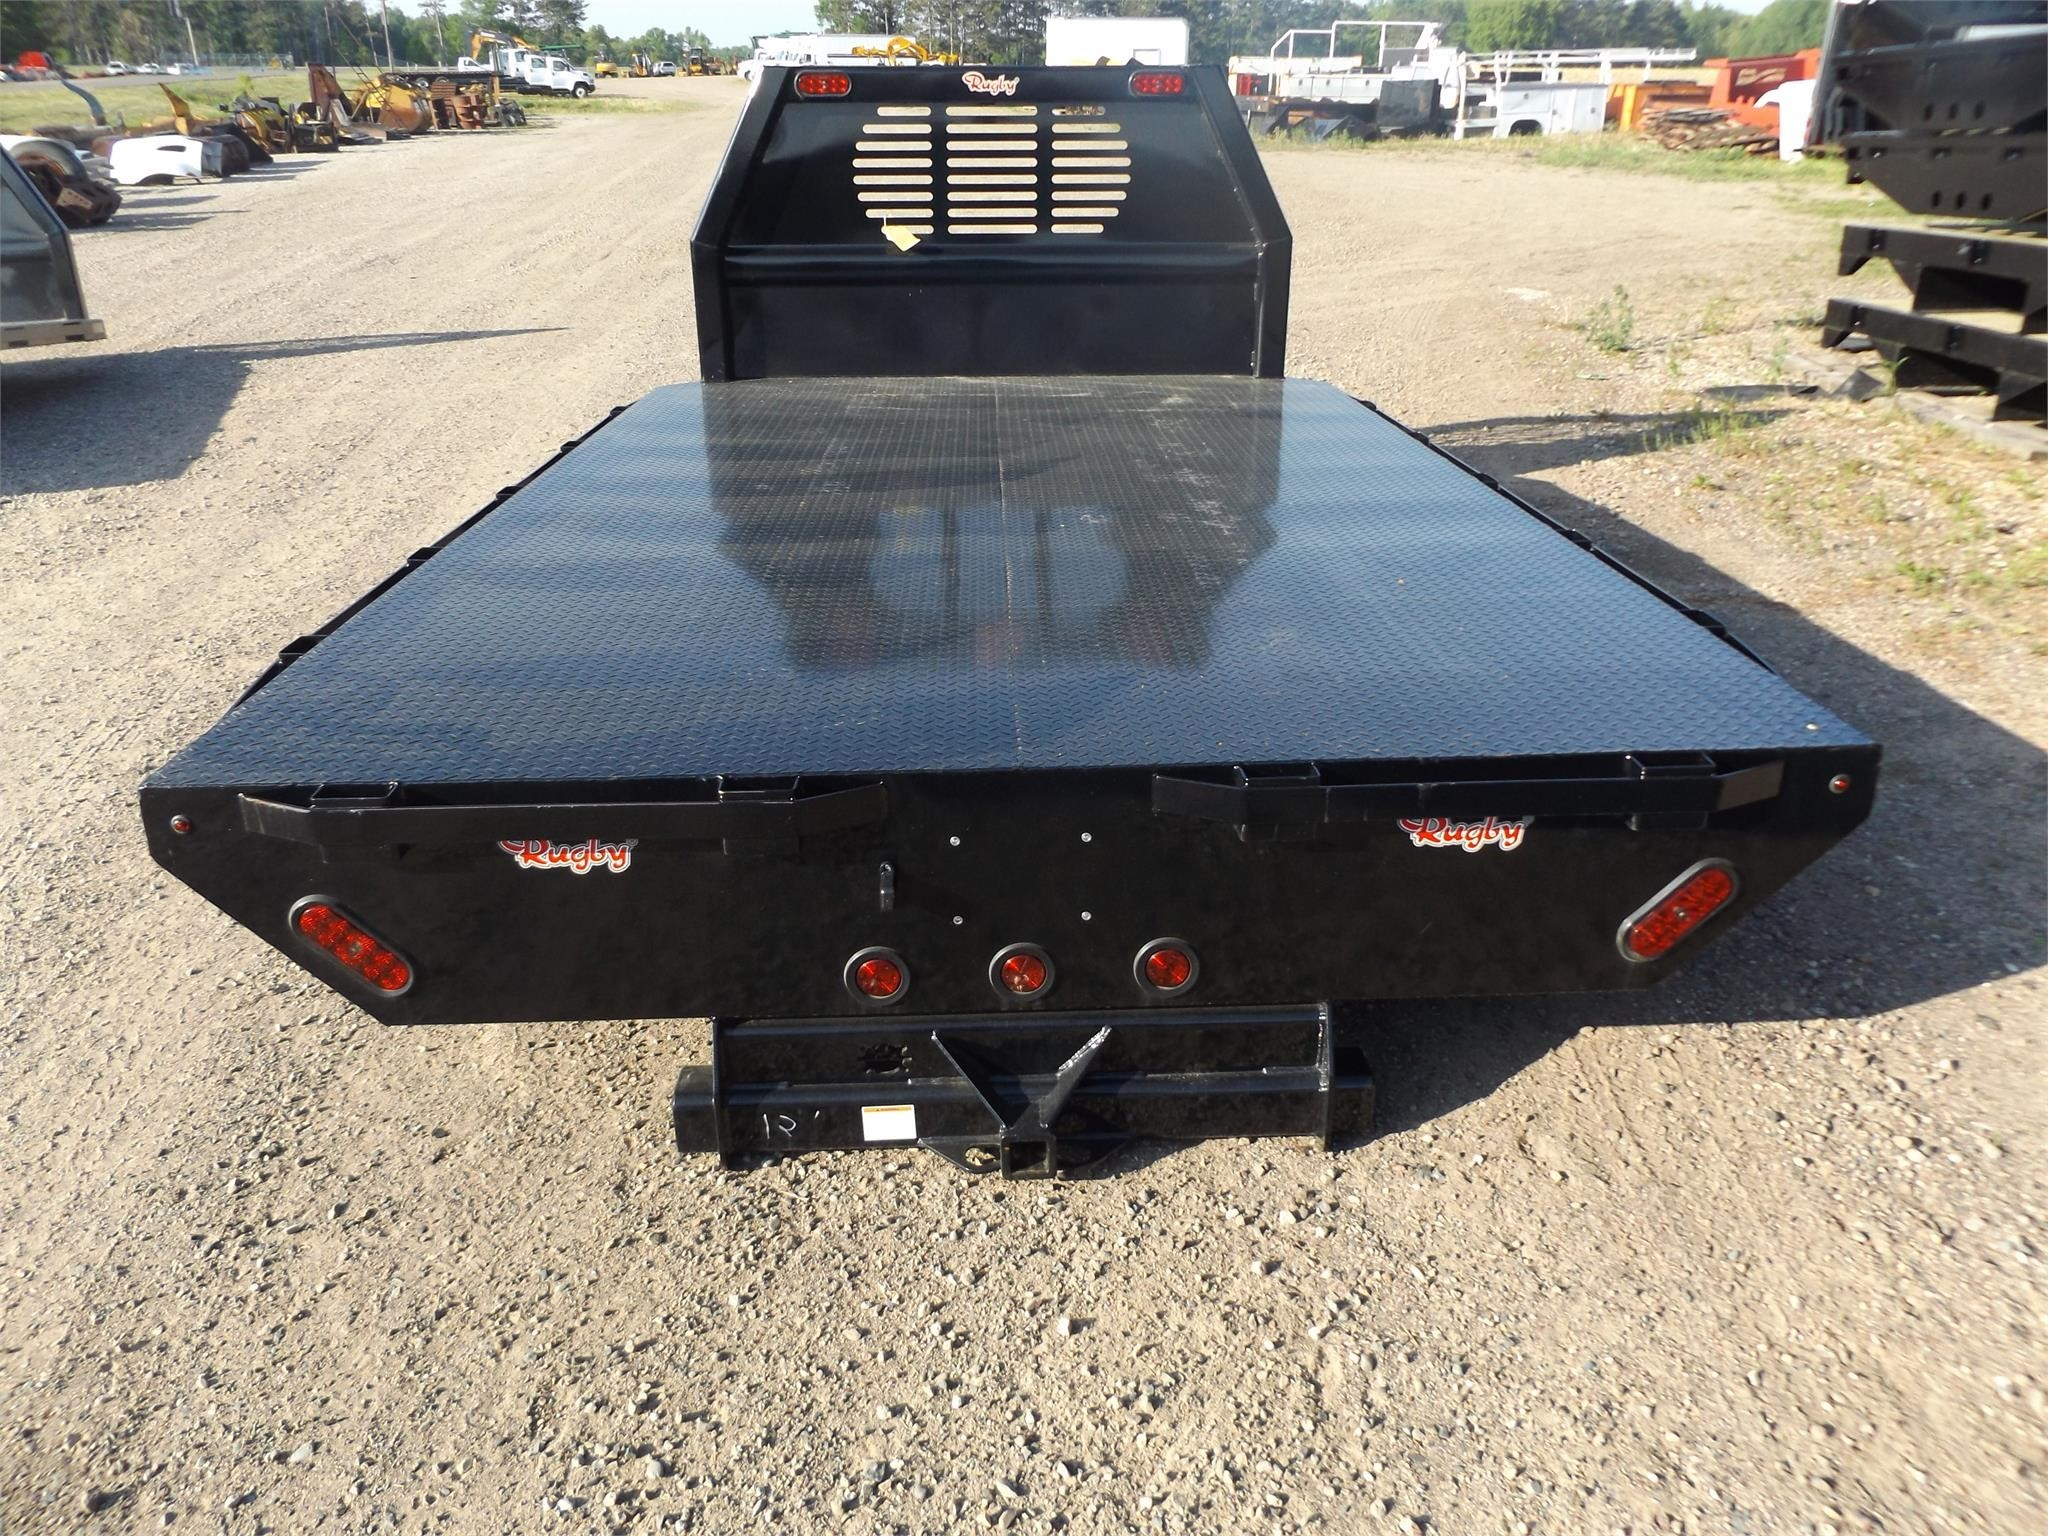 2020 Rugby 12 FT Truck Bed